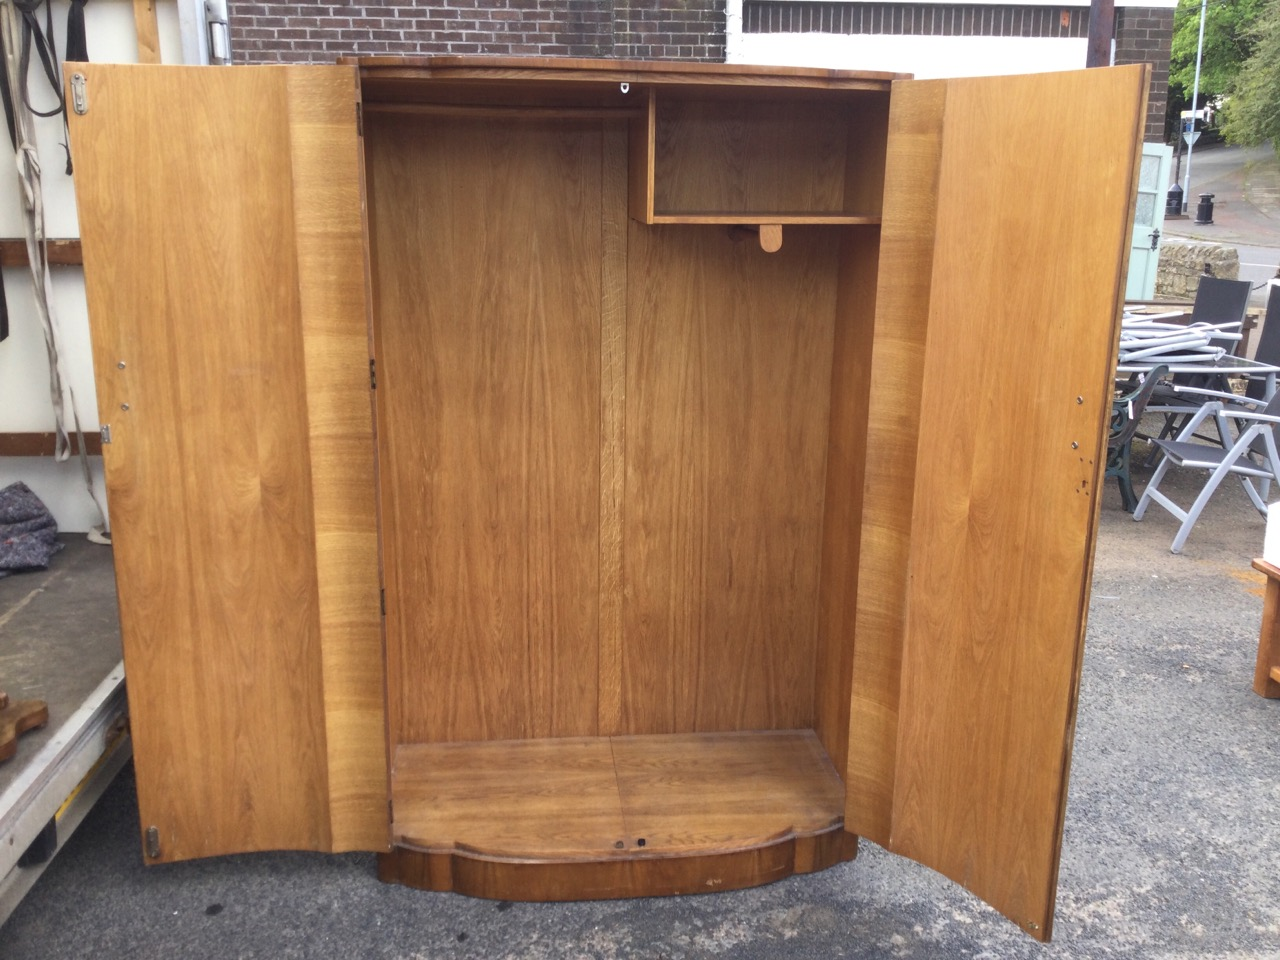 A deco walnut wardrobe of scalloped bowfronted outline having two doors enclosing an interior with - Image 3 of 3